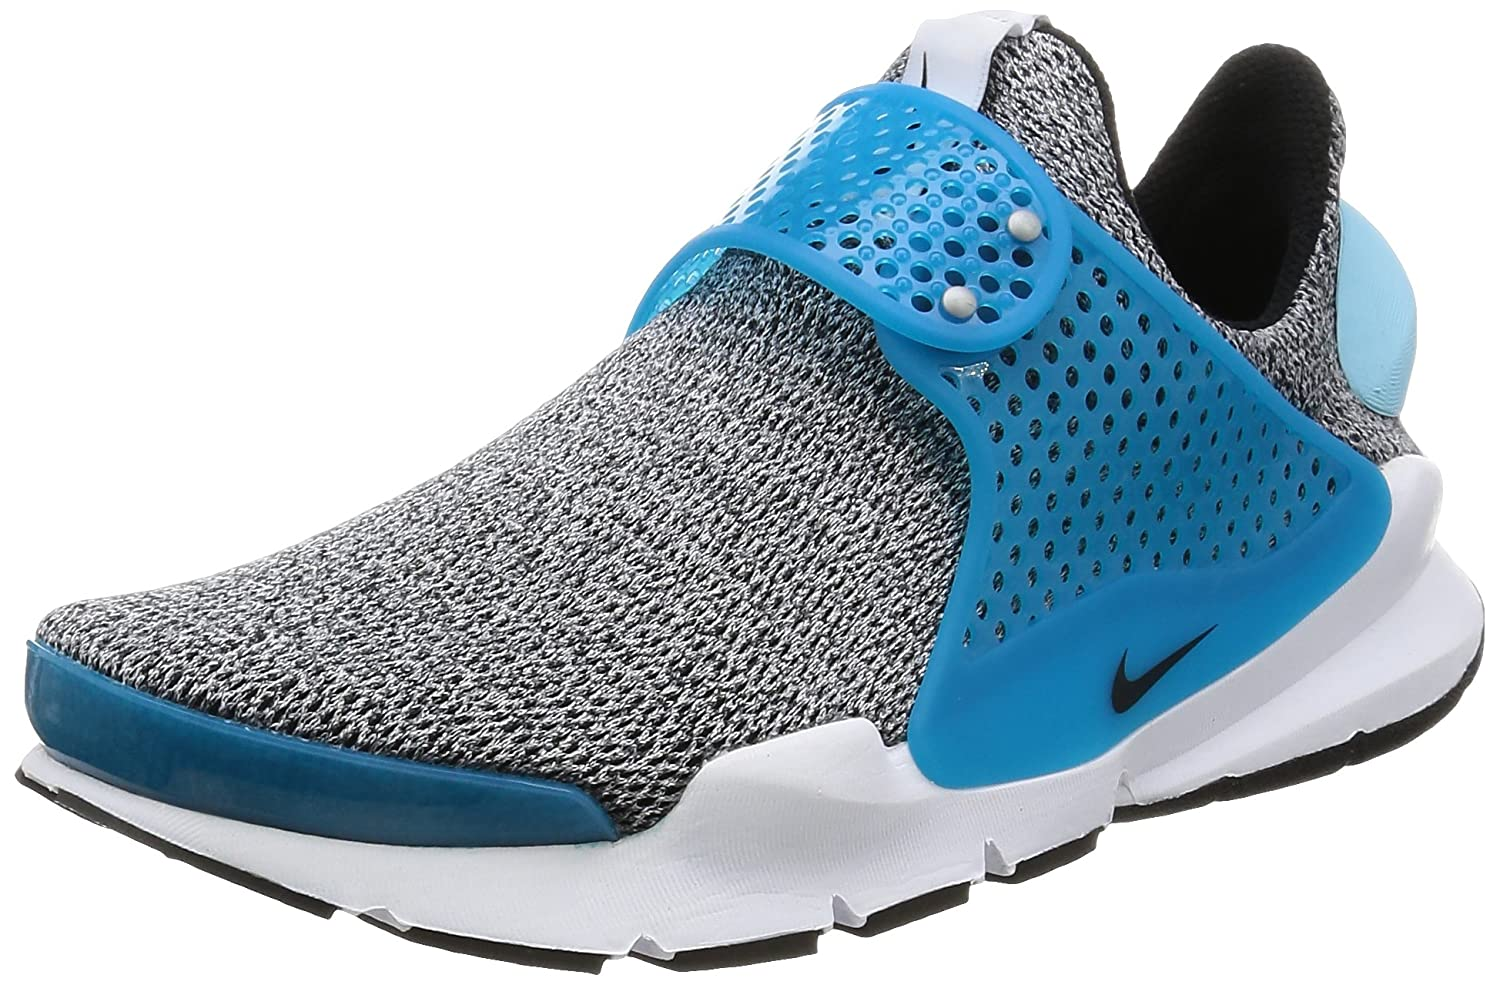 NIKE Womens Sock Dart Running Shoes B01NH4Z1JV 7 B(M) US|Black / Black-blue Lagoon-white